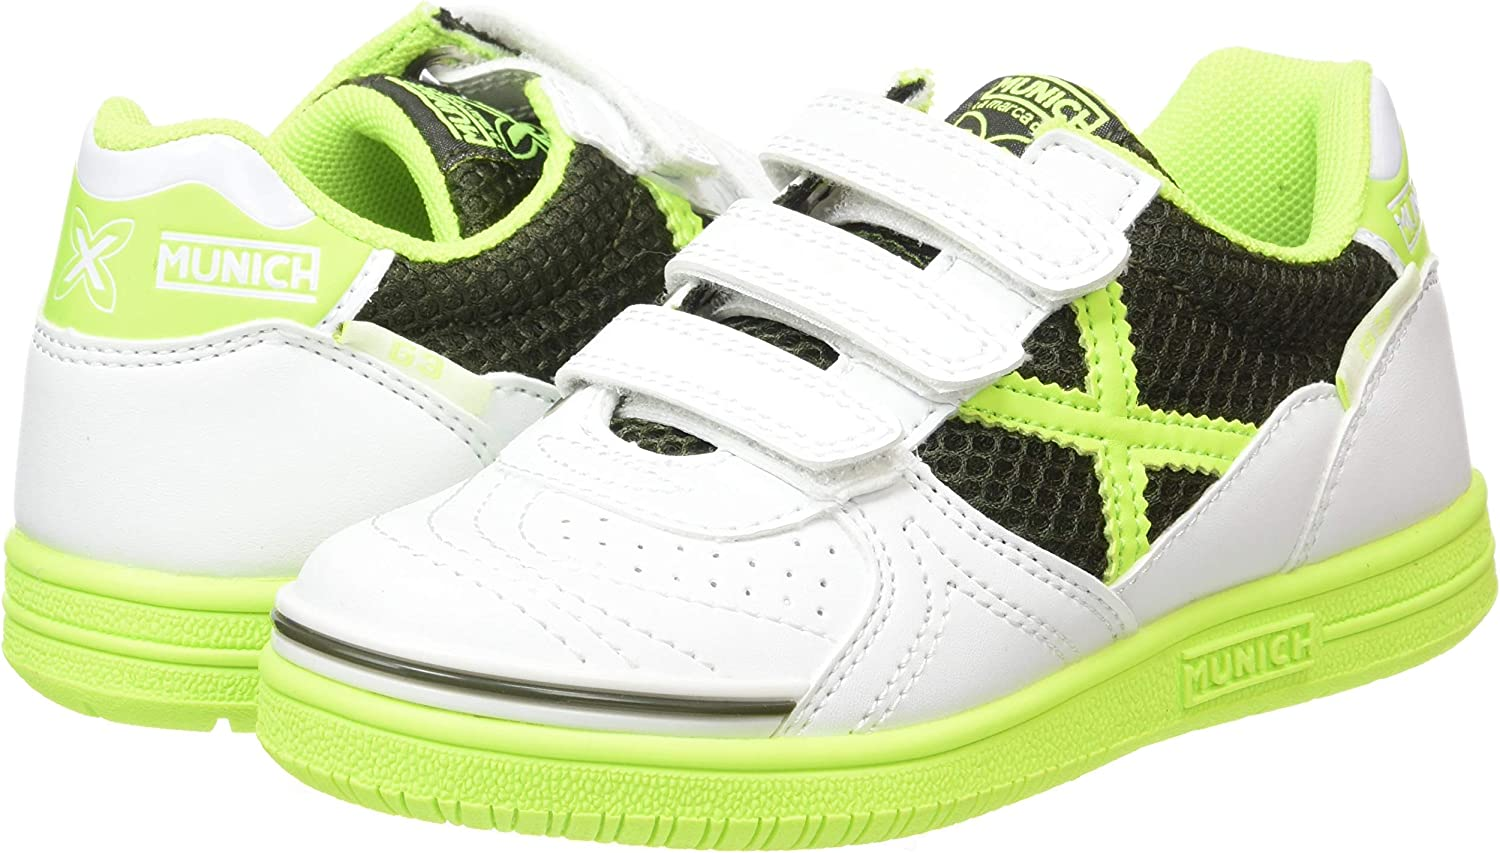 Munich G-3 Kid VCO Breath, Zapatillas de Deporte Unisex Niños, Multicolor (Multicolor 827): Amazon.es: Deportes y aire libre